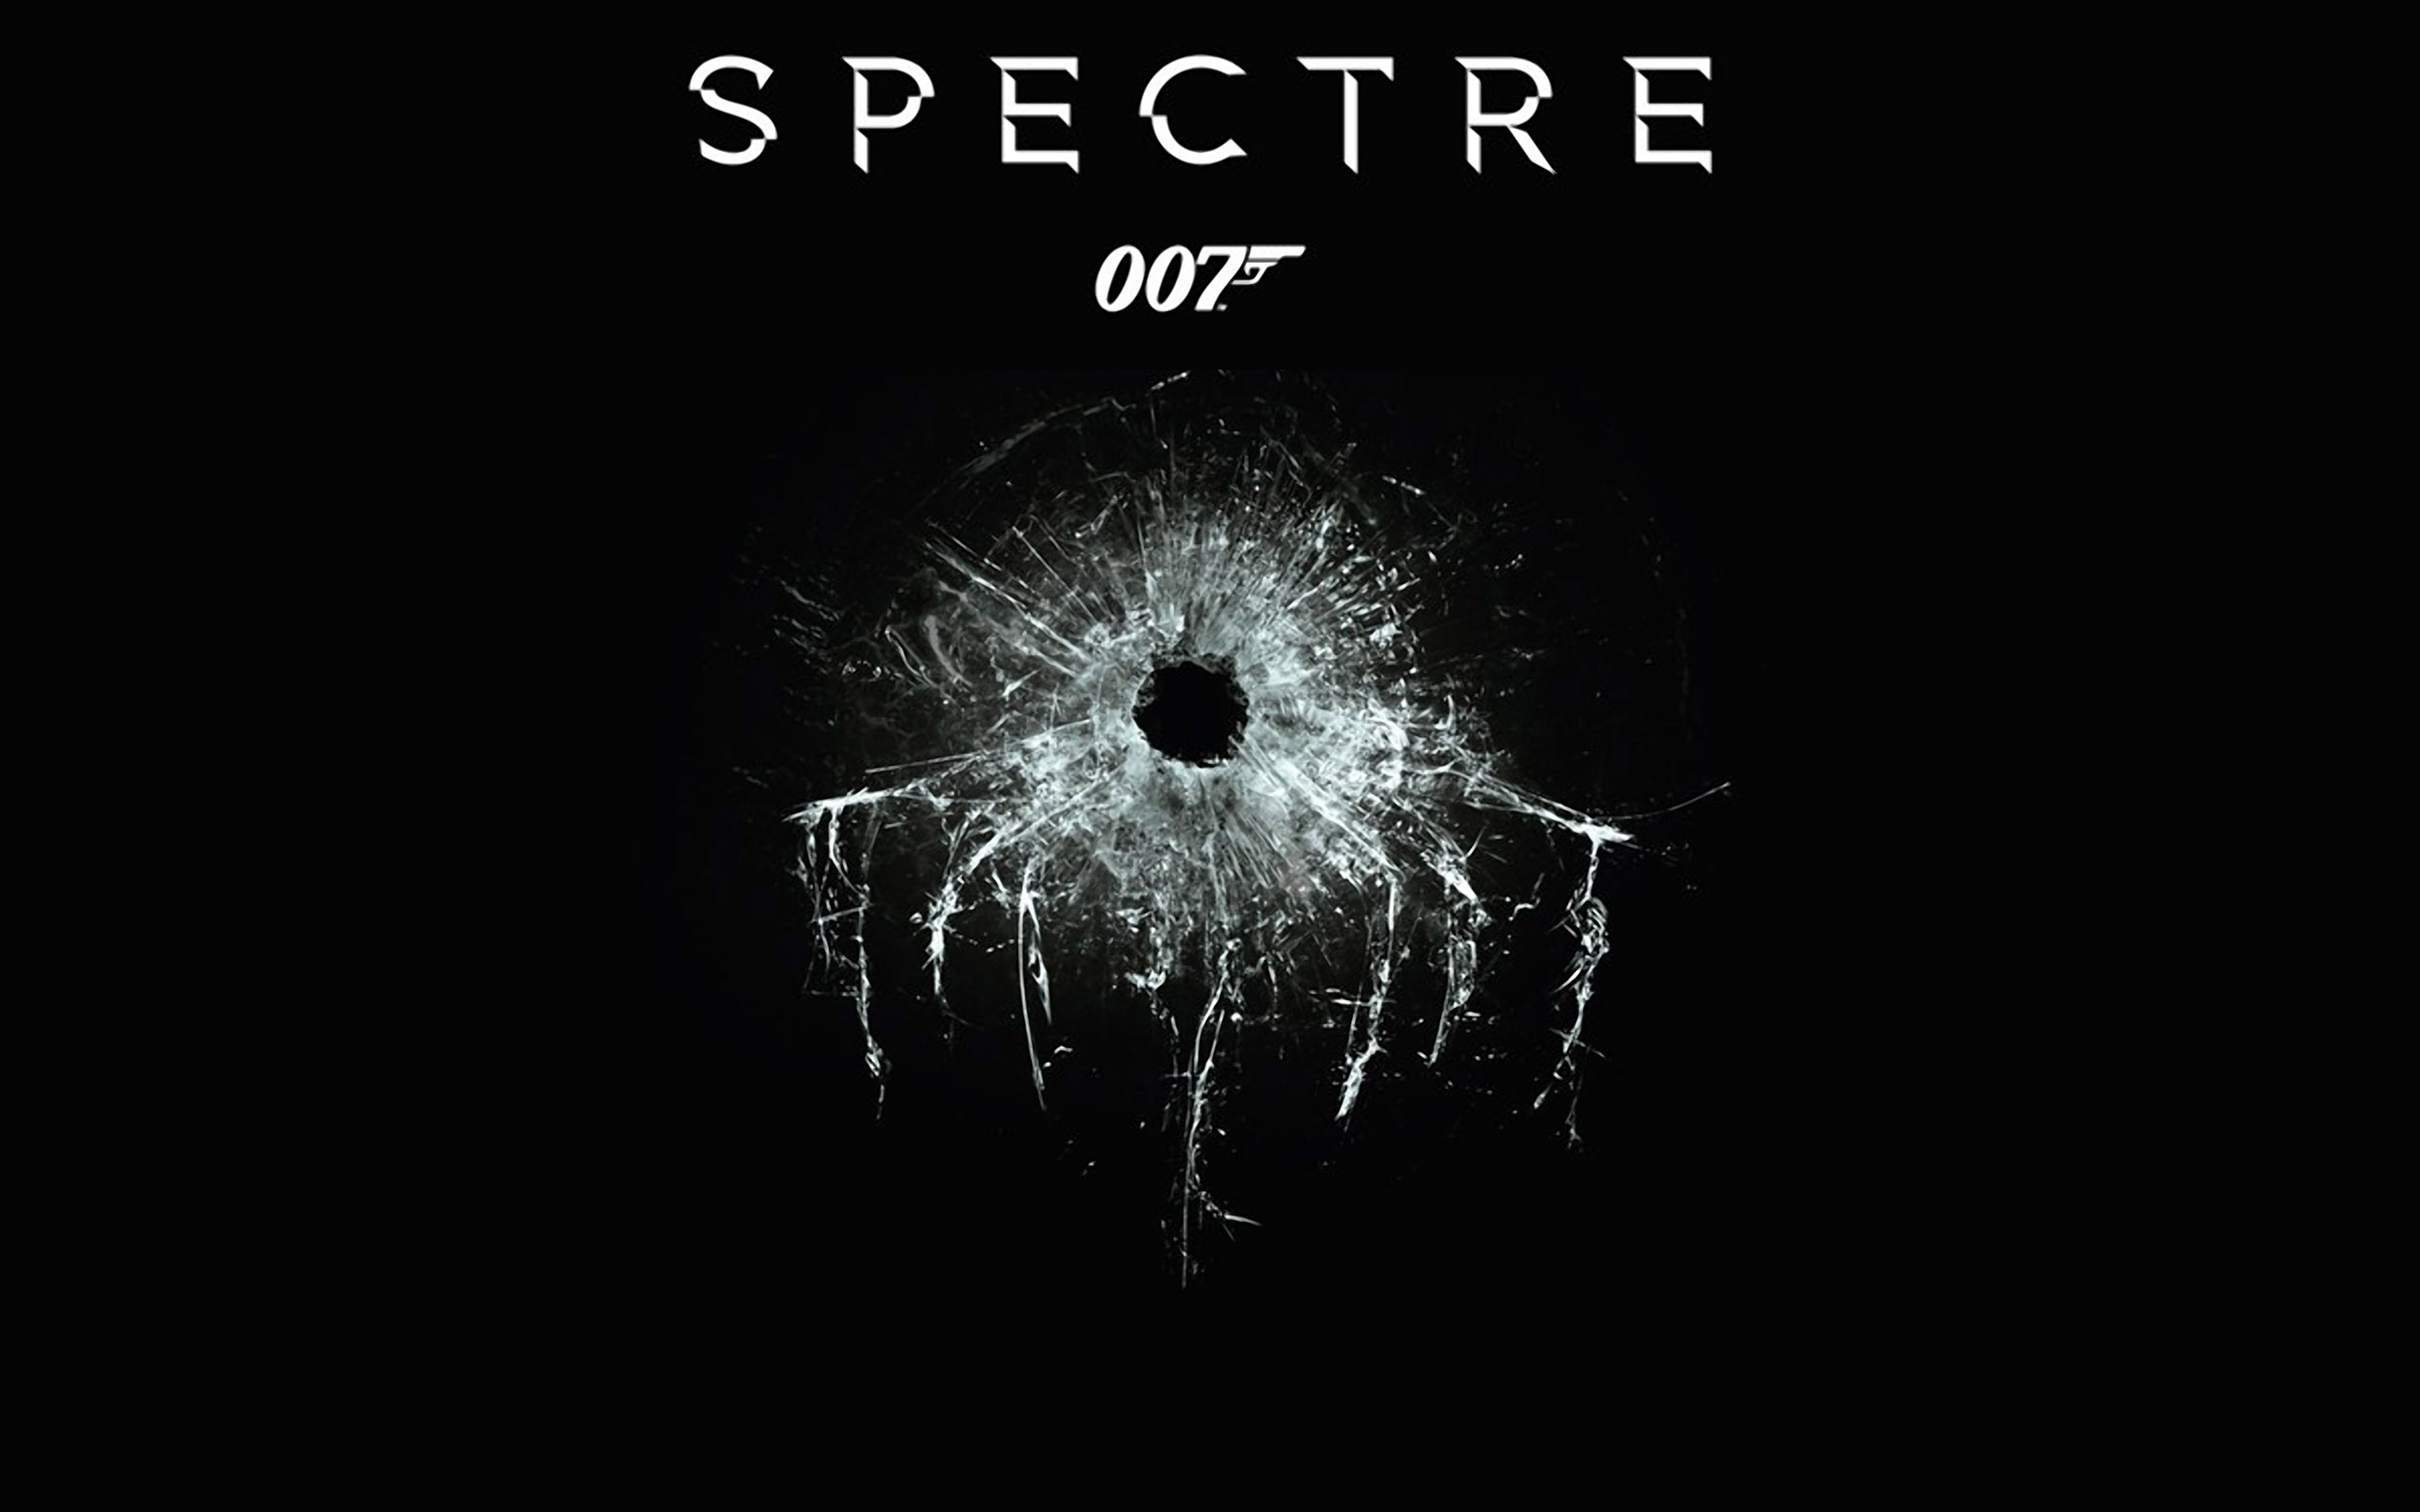 007 background image - Spectre 2015 James Bond 007 Wallpapers Hd Wallpapers